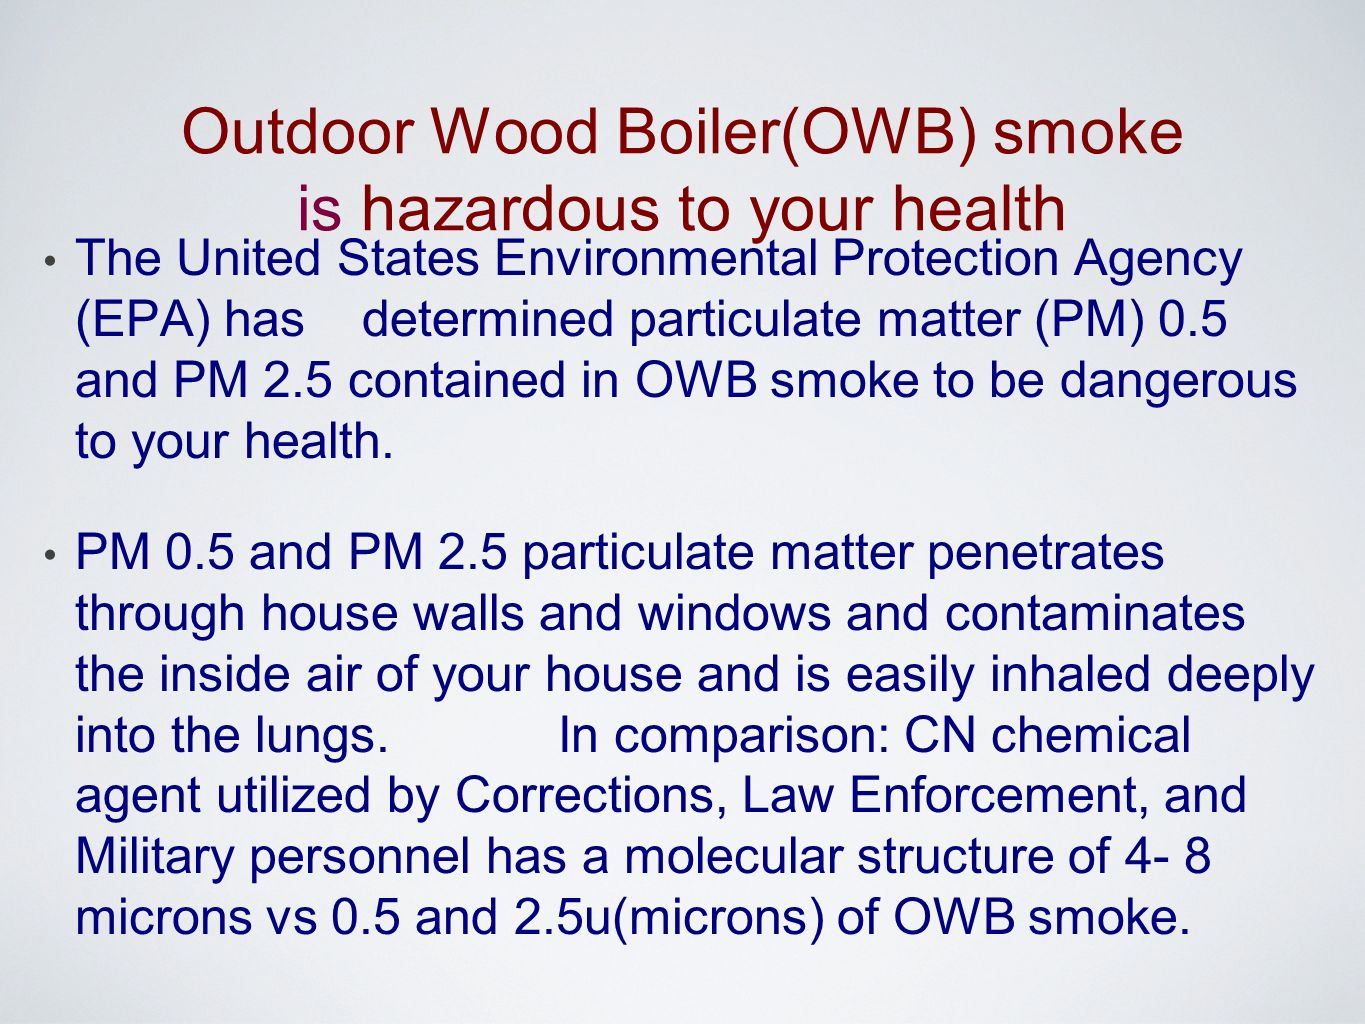 The United States Environmental Protection Agency (EPA) has determined particulate matter (PM) 0.5 and PM 2.5 contained in OWB smoke to be dangerous to your health.